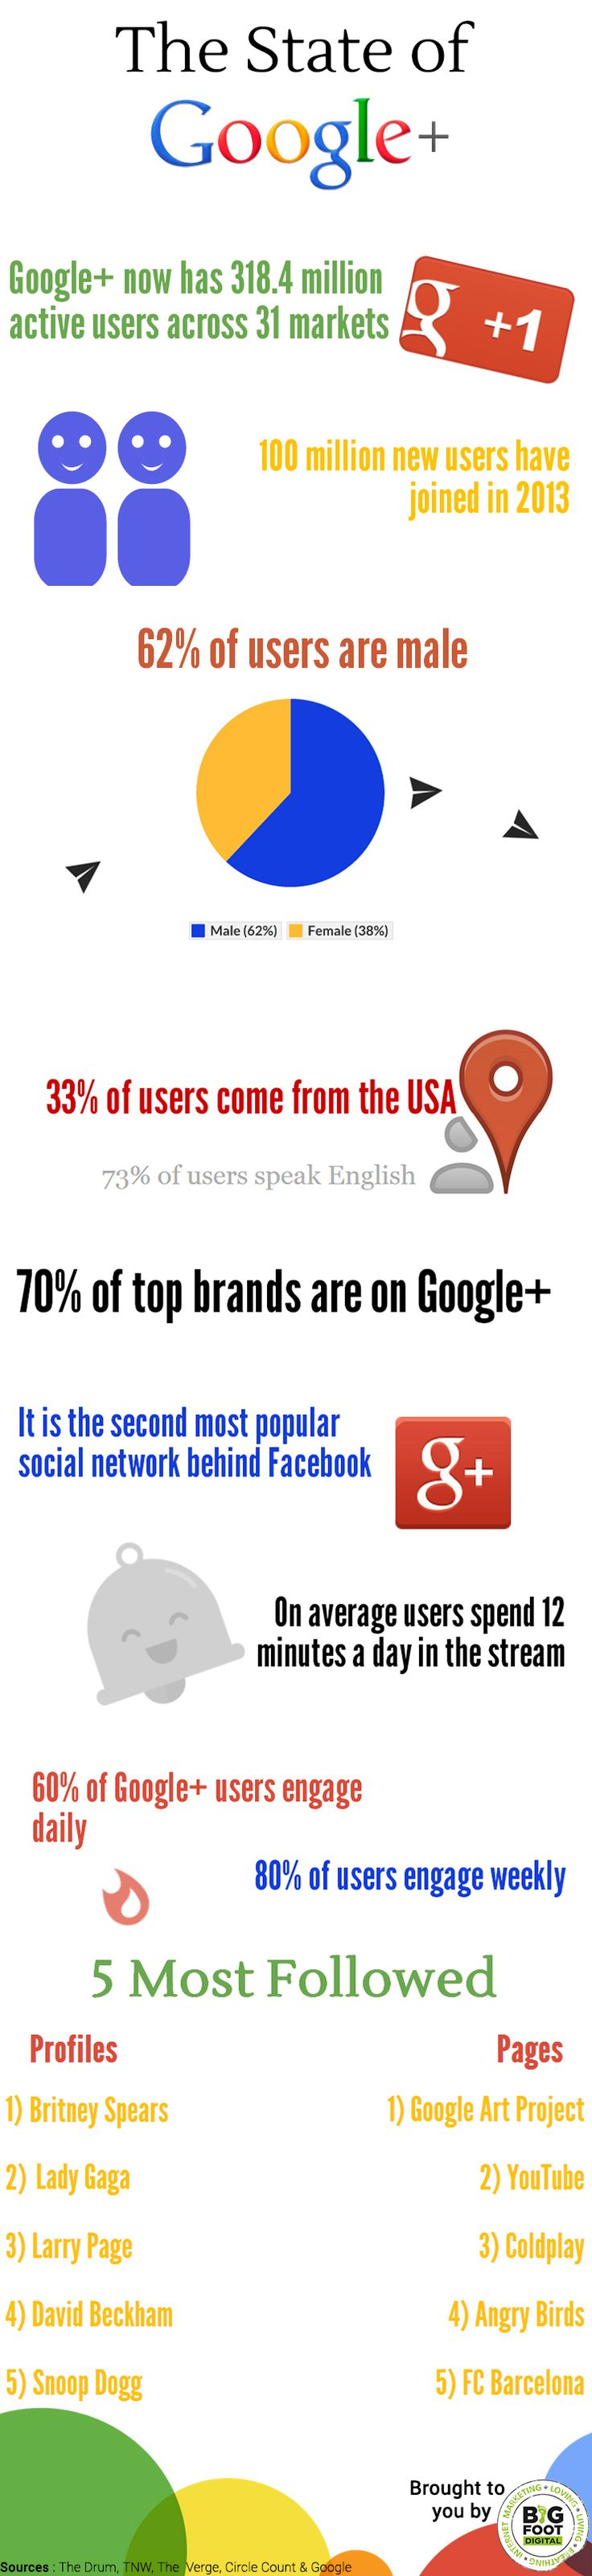 Google+ has grown significantly over the last two years. Here are 11 Google+ facts that will blow your mind!